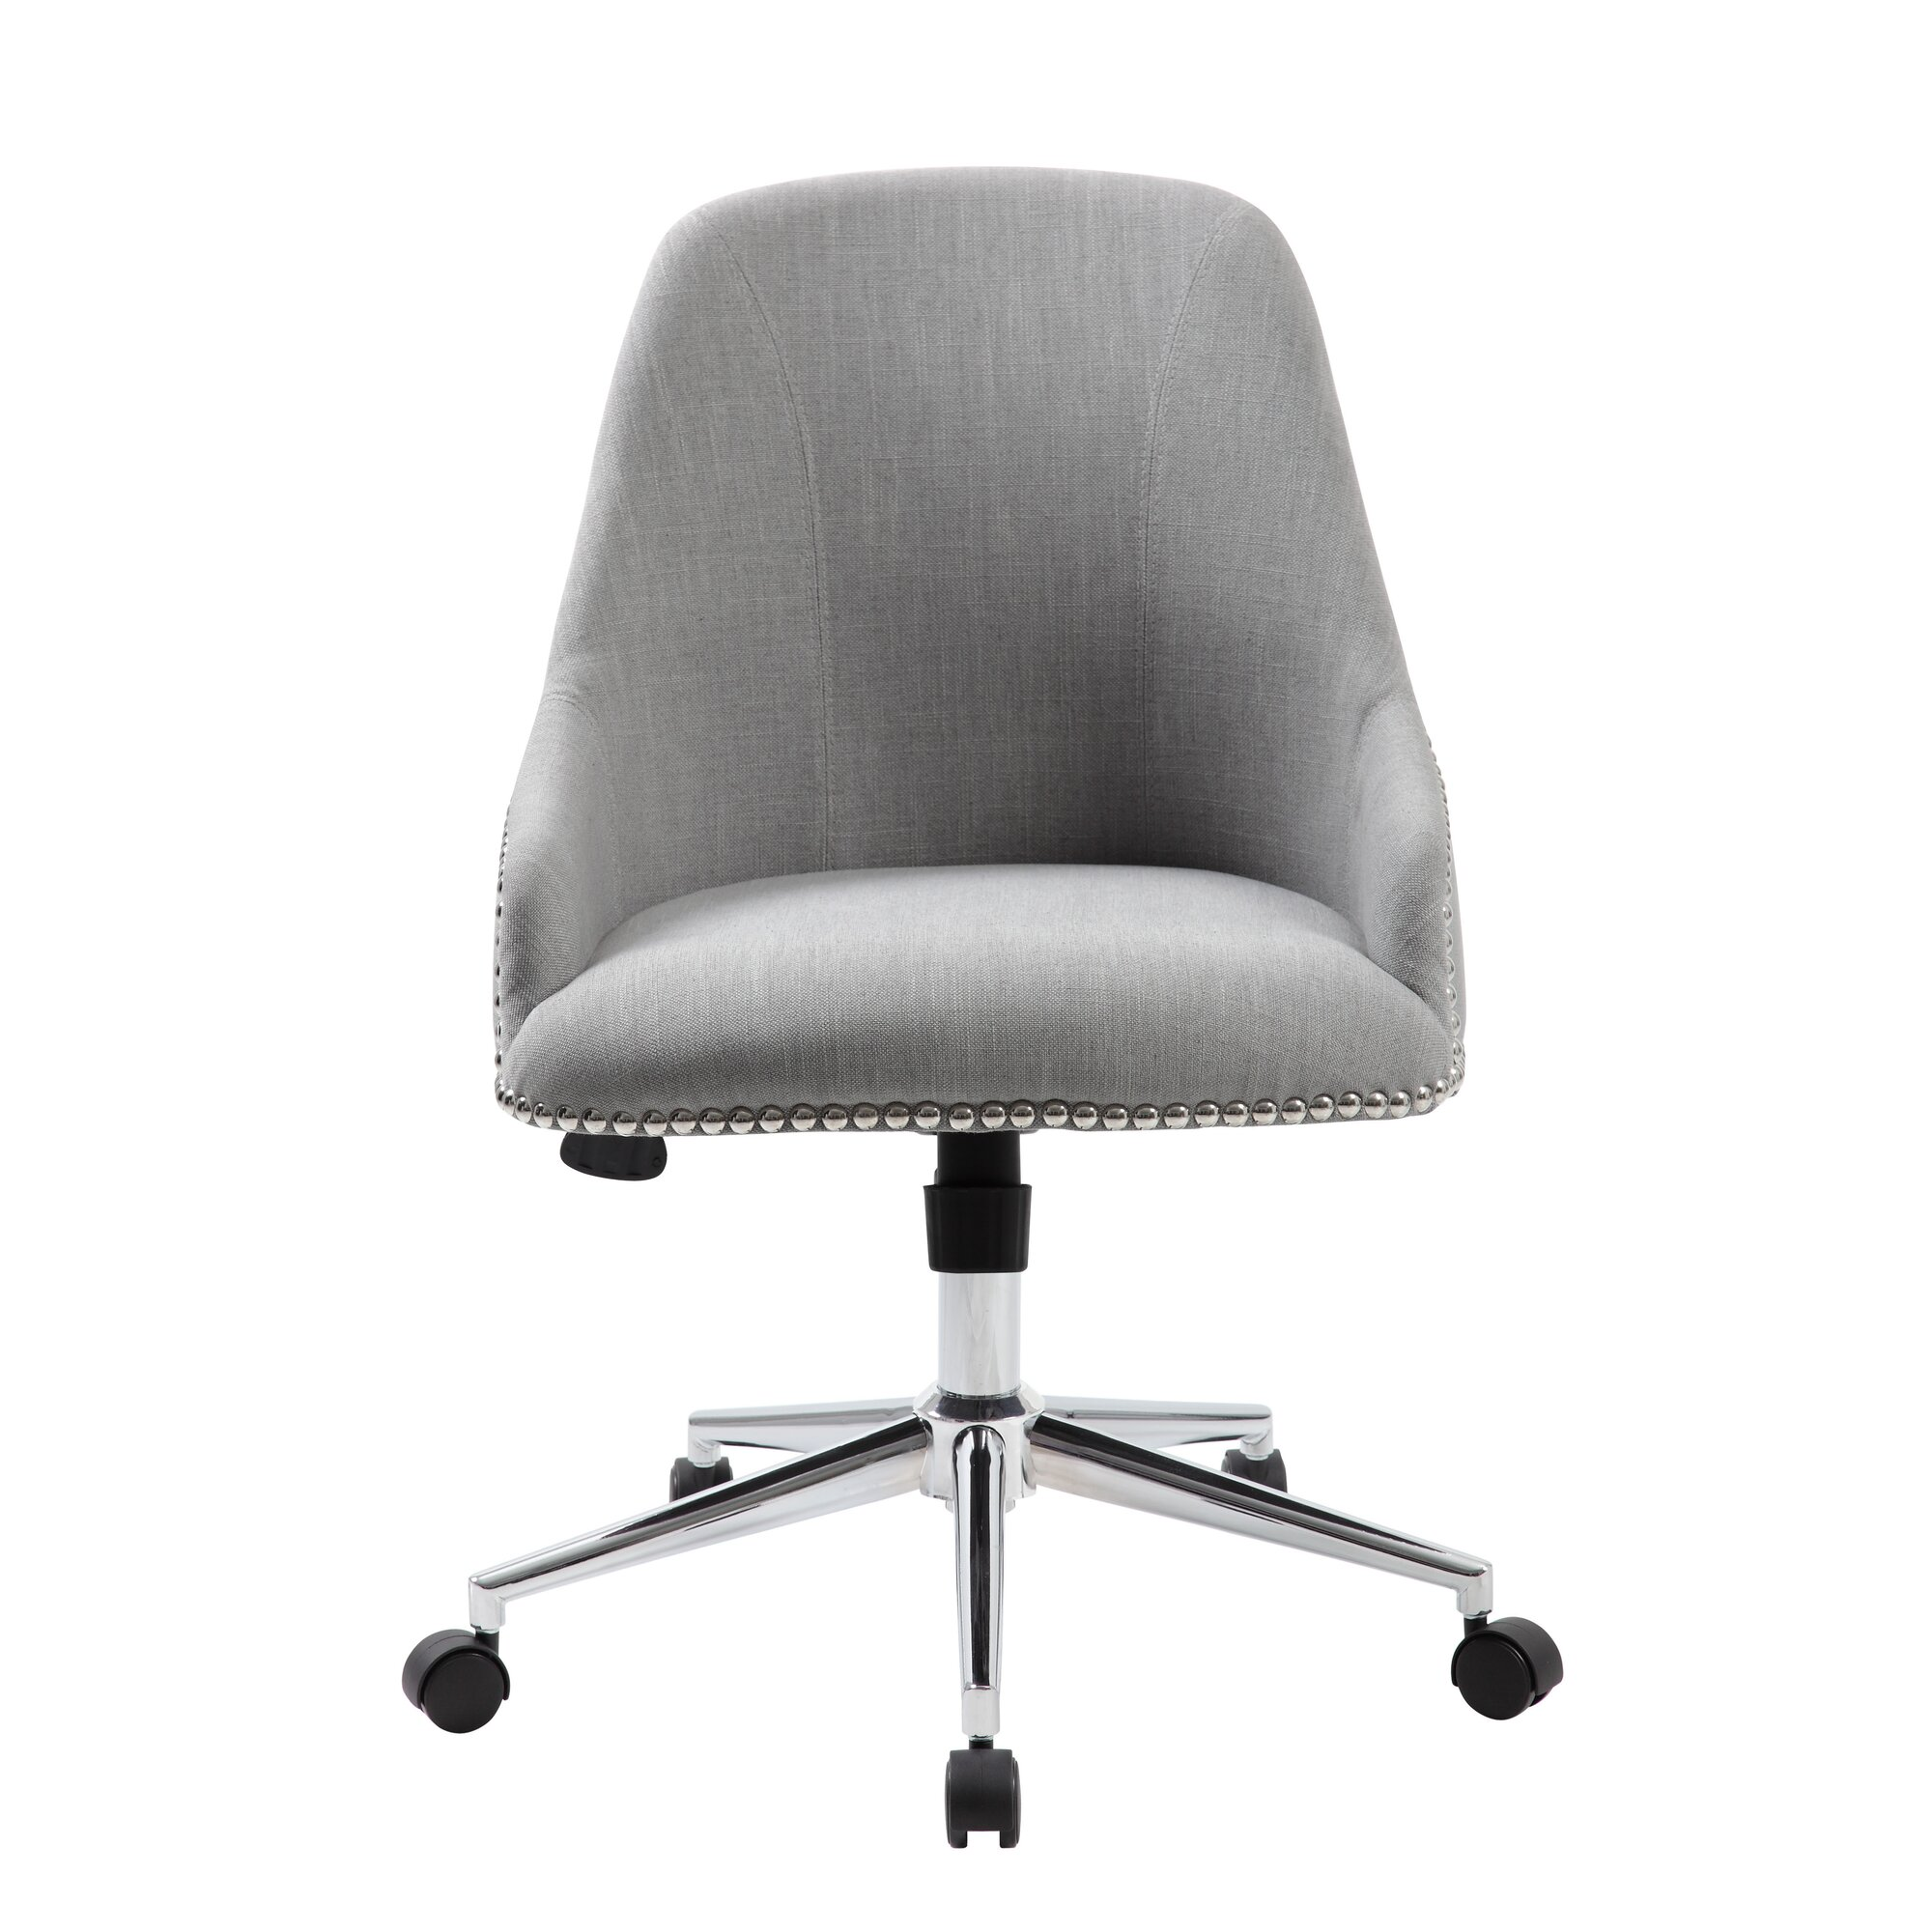 Modern leather office chair - Quick View Blue Carnegie Office Chair